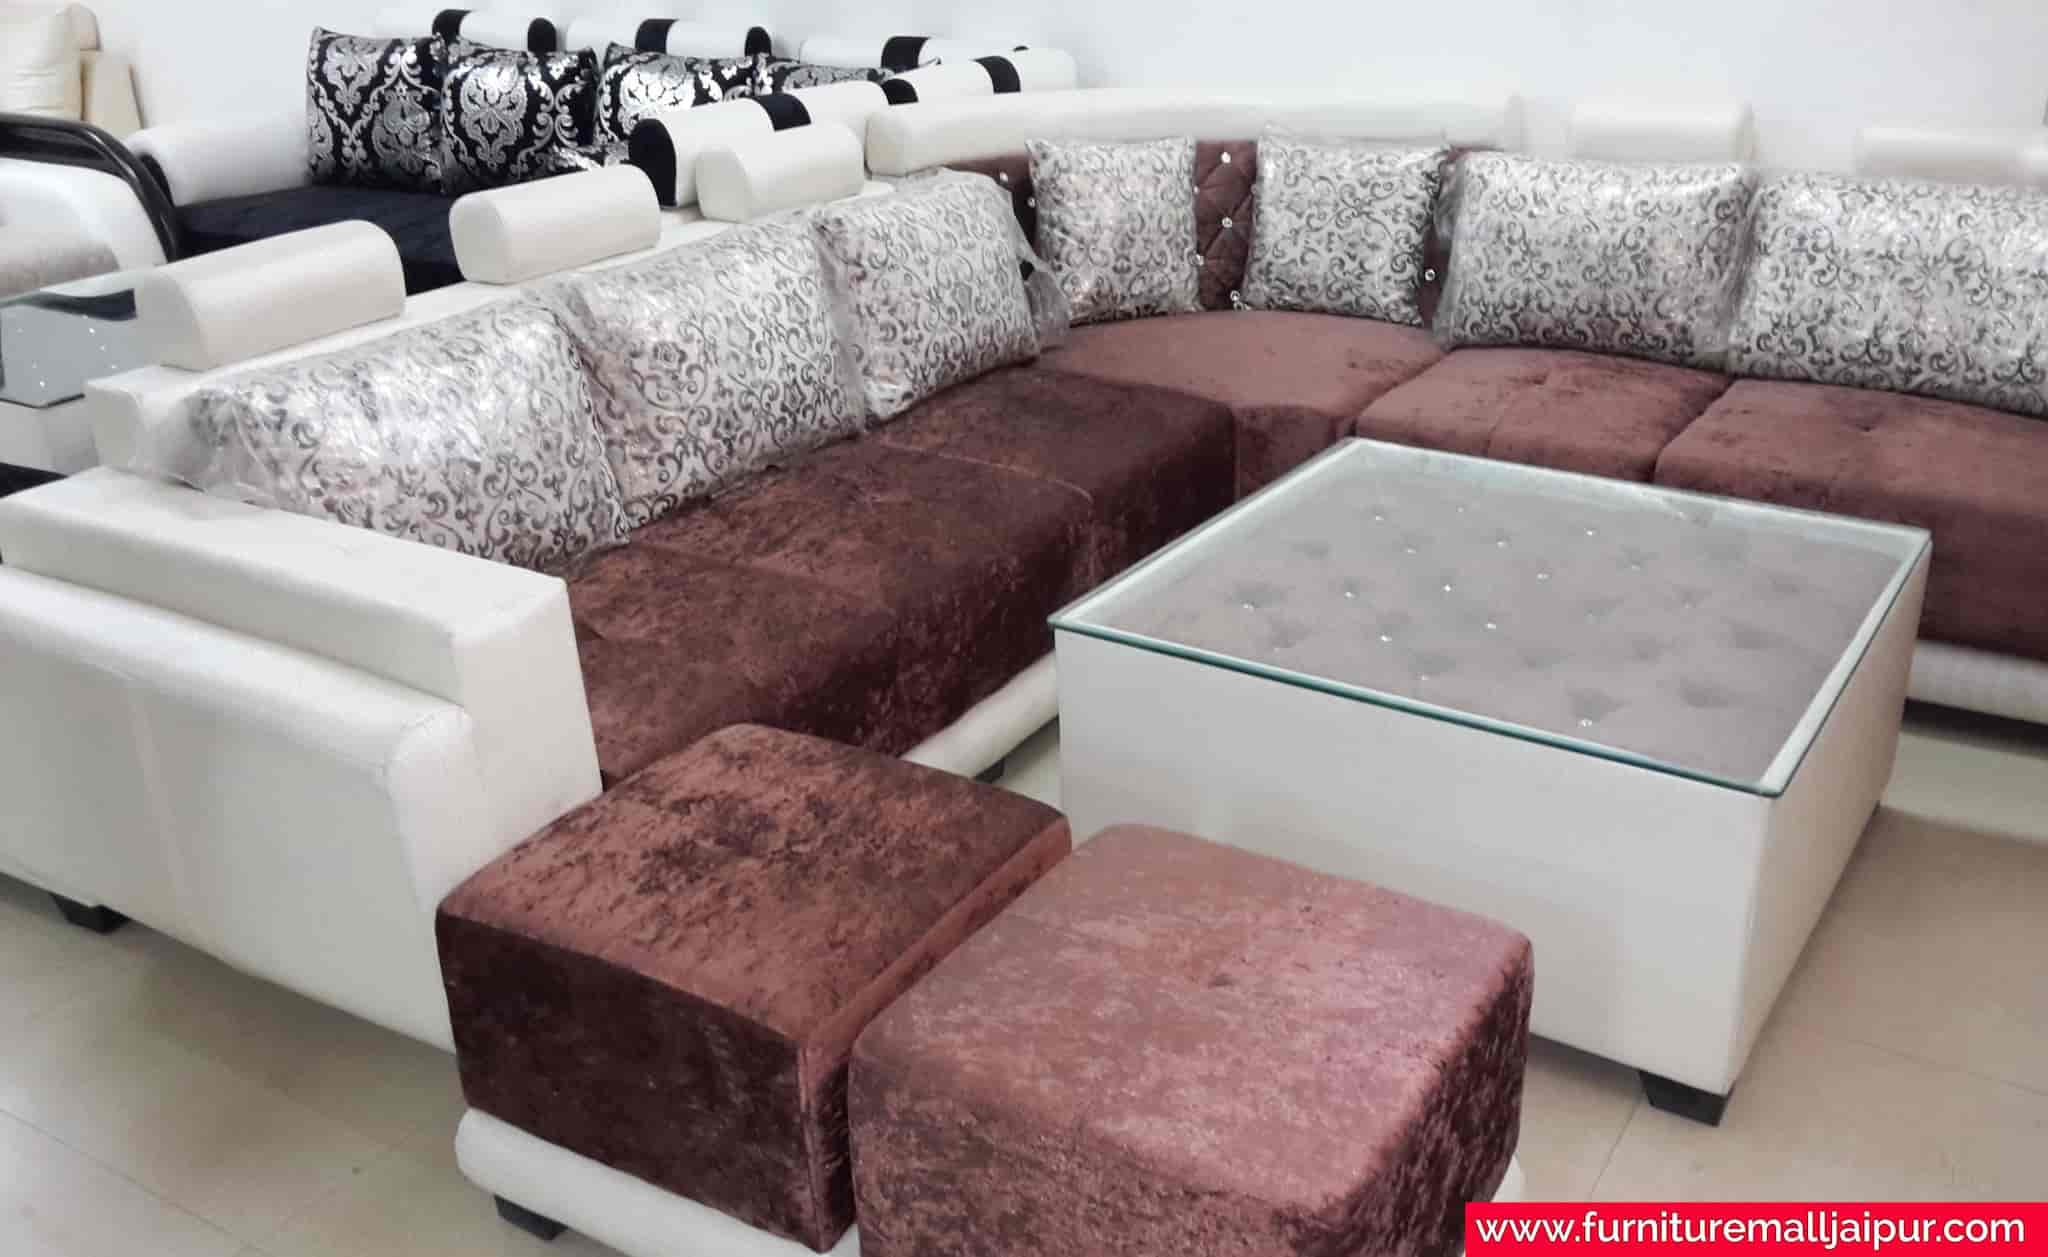 Furniture Mall Nirman Nagar Furniture Dealers in Jaipur Justdial